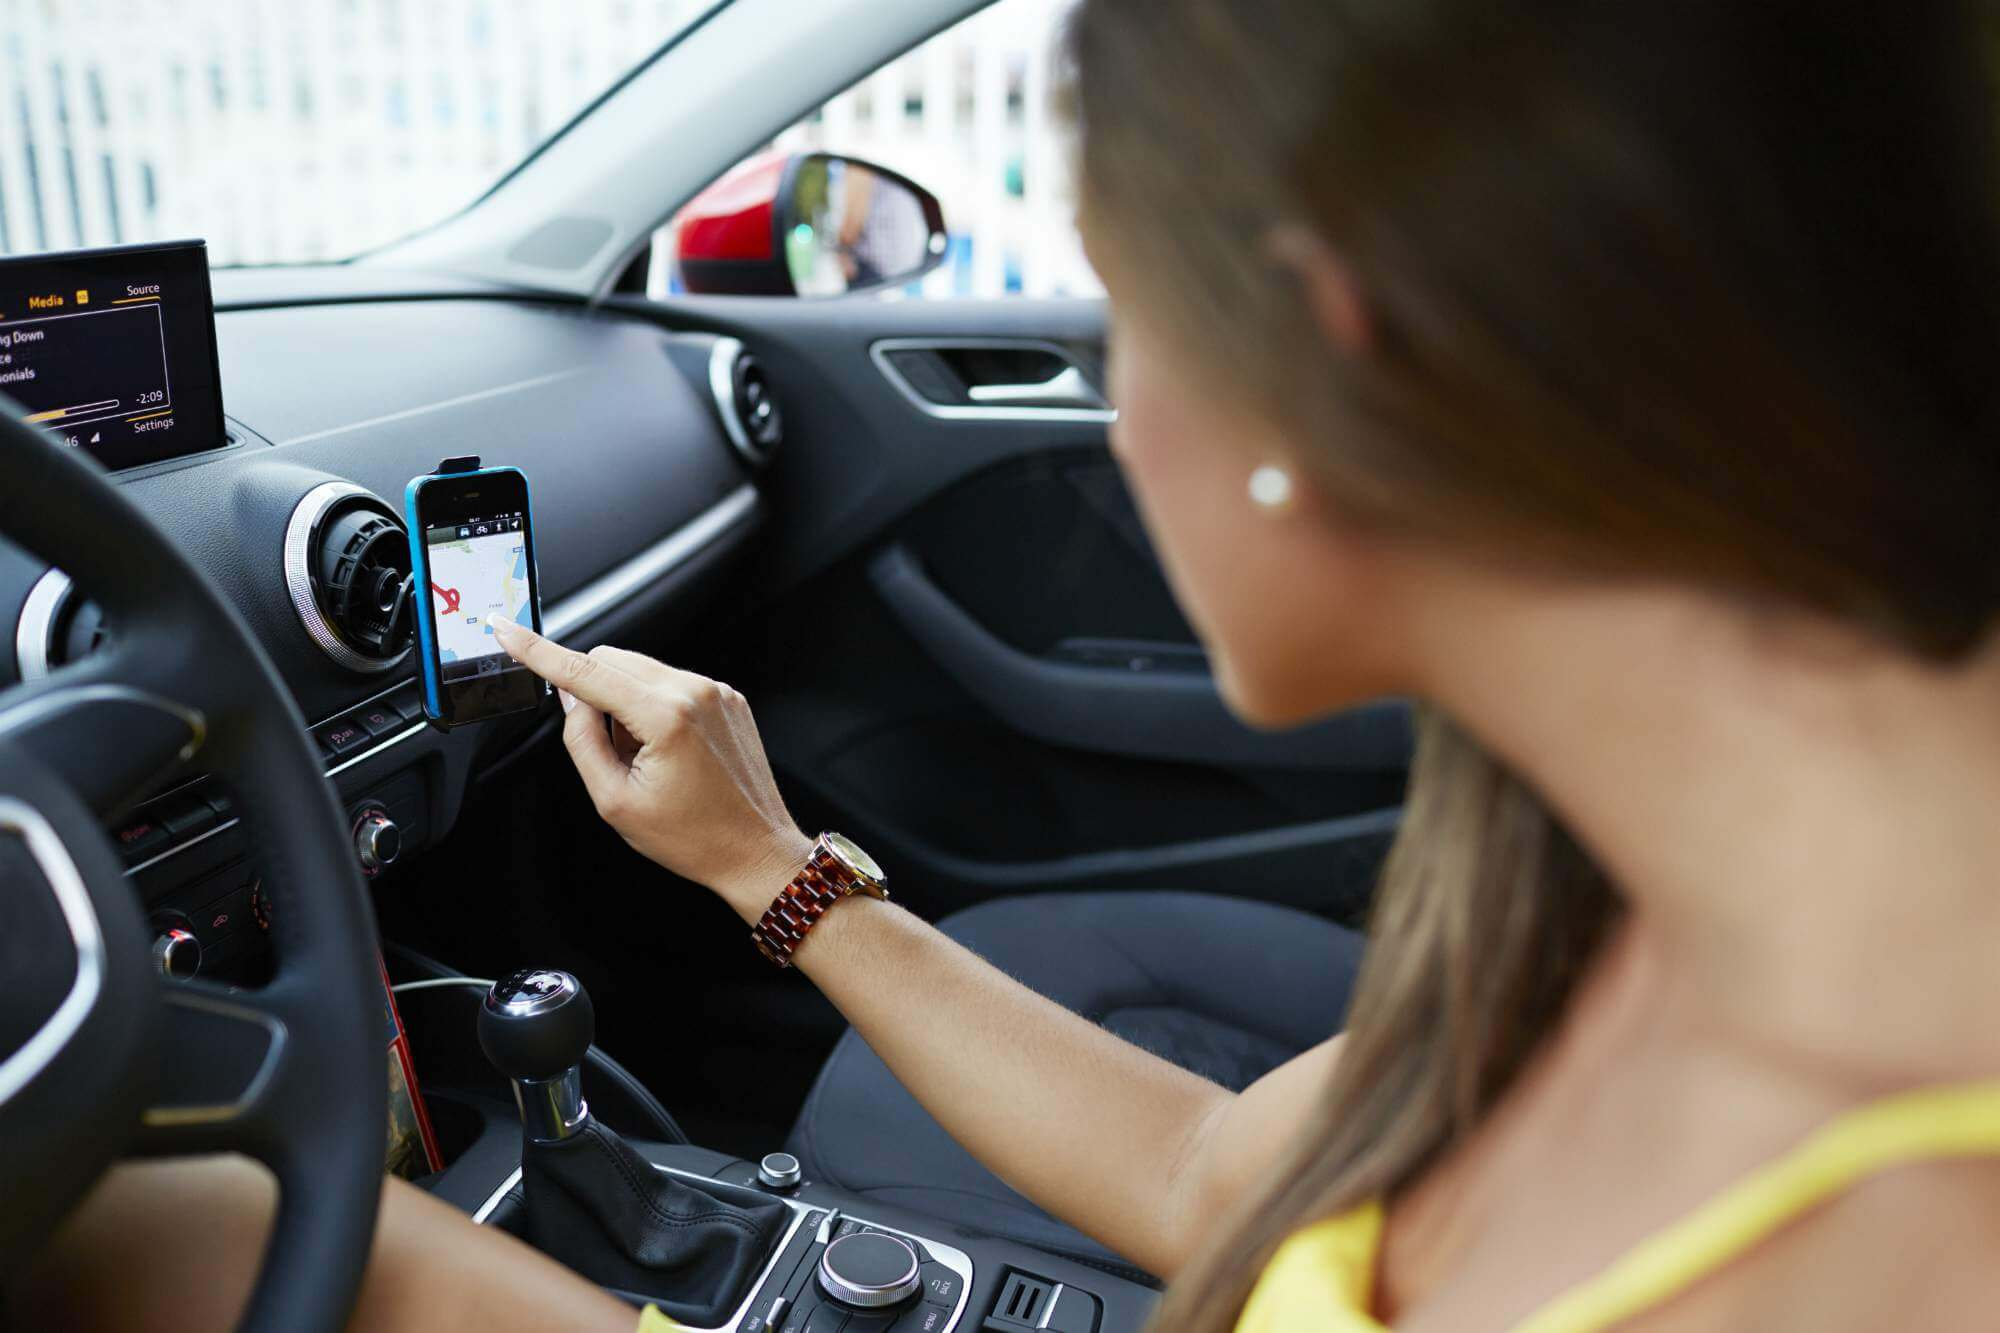 WiFi access point: Cool car accessories in 2018